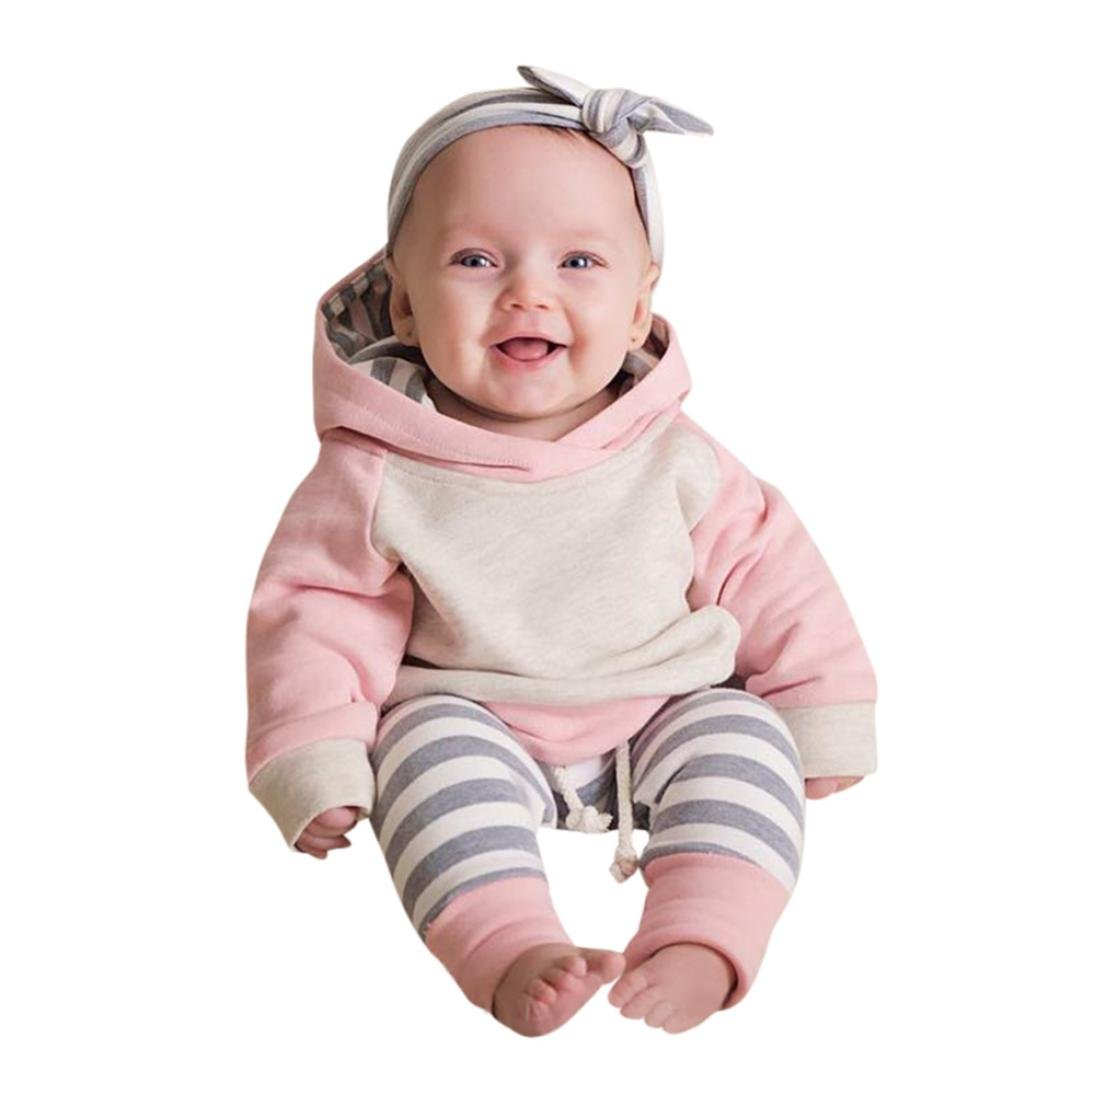 LuckyBB 3pcs Toddler Baby Girls Clothes Set Stripe Hoodie Tops+Pants+Headband Outfits